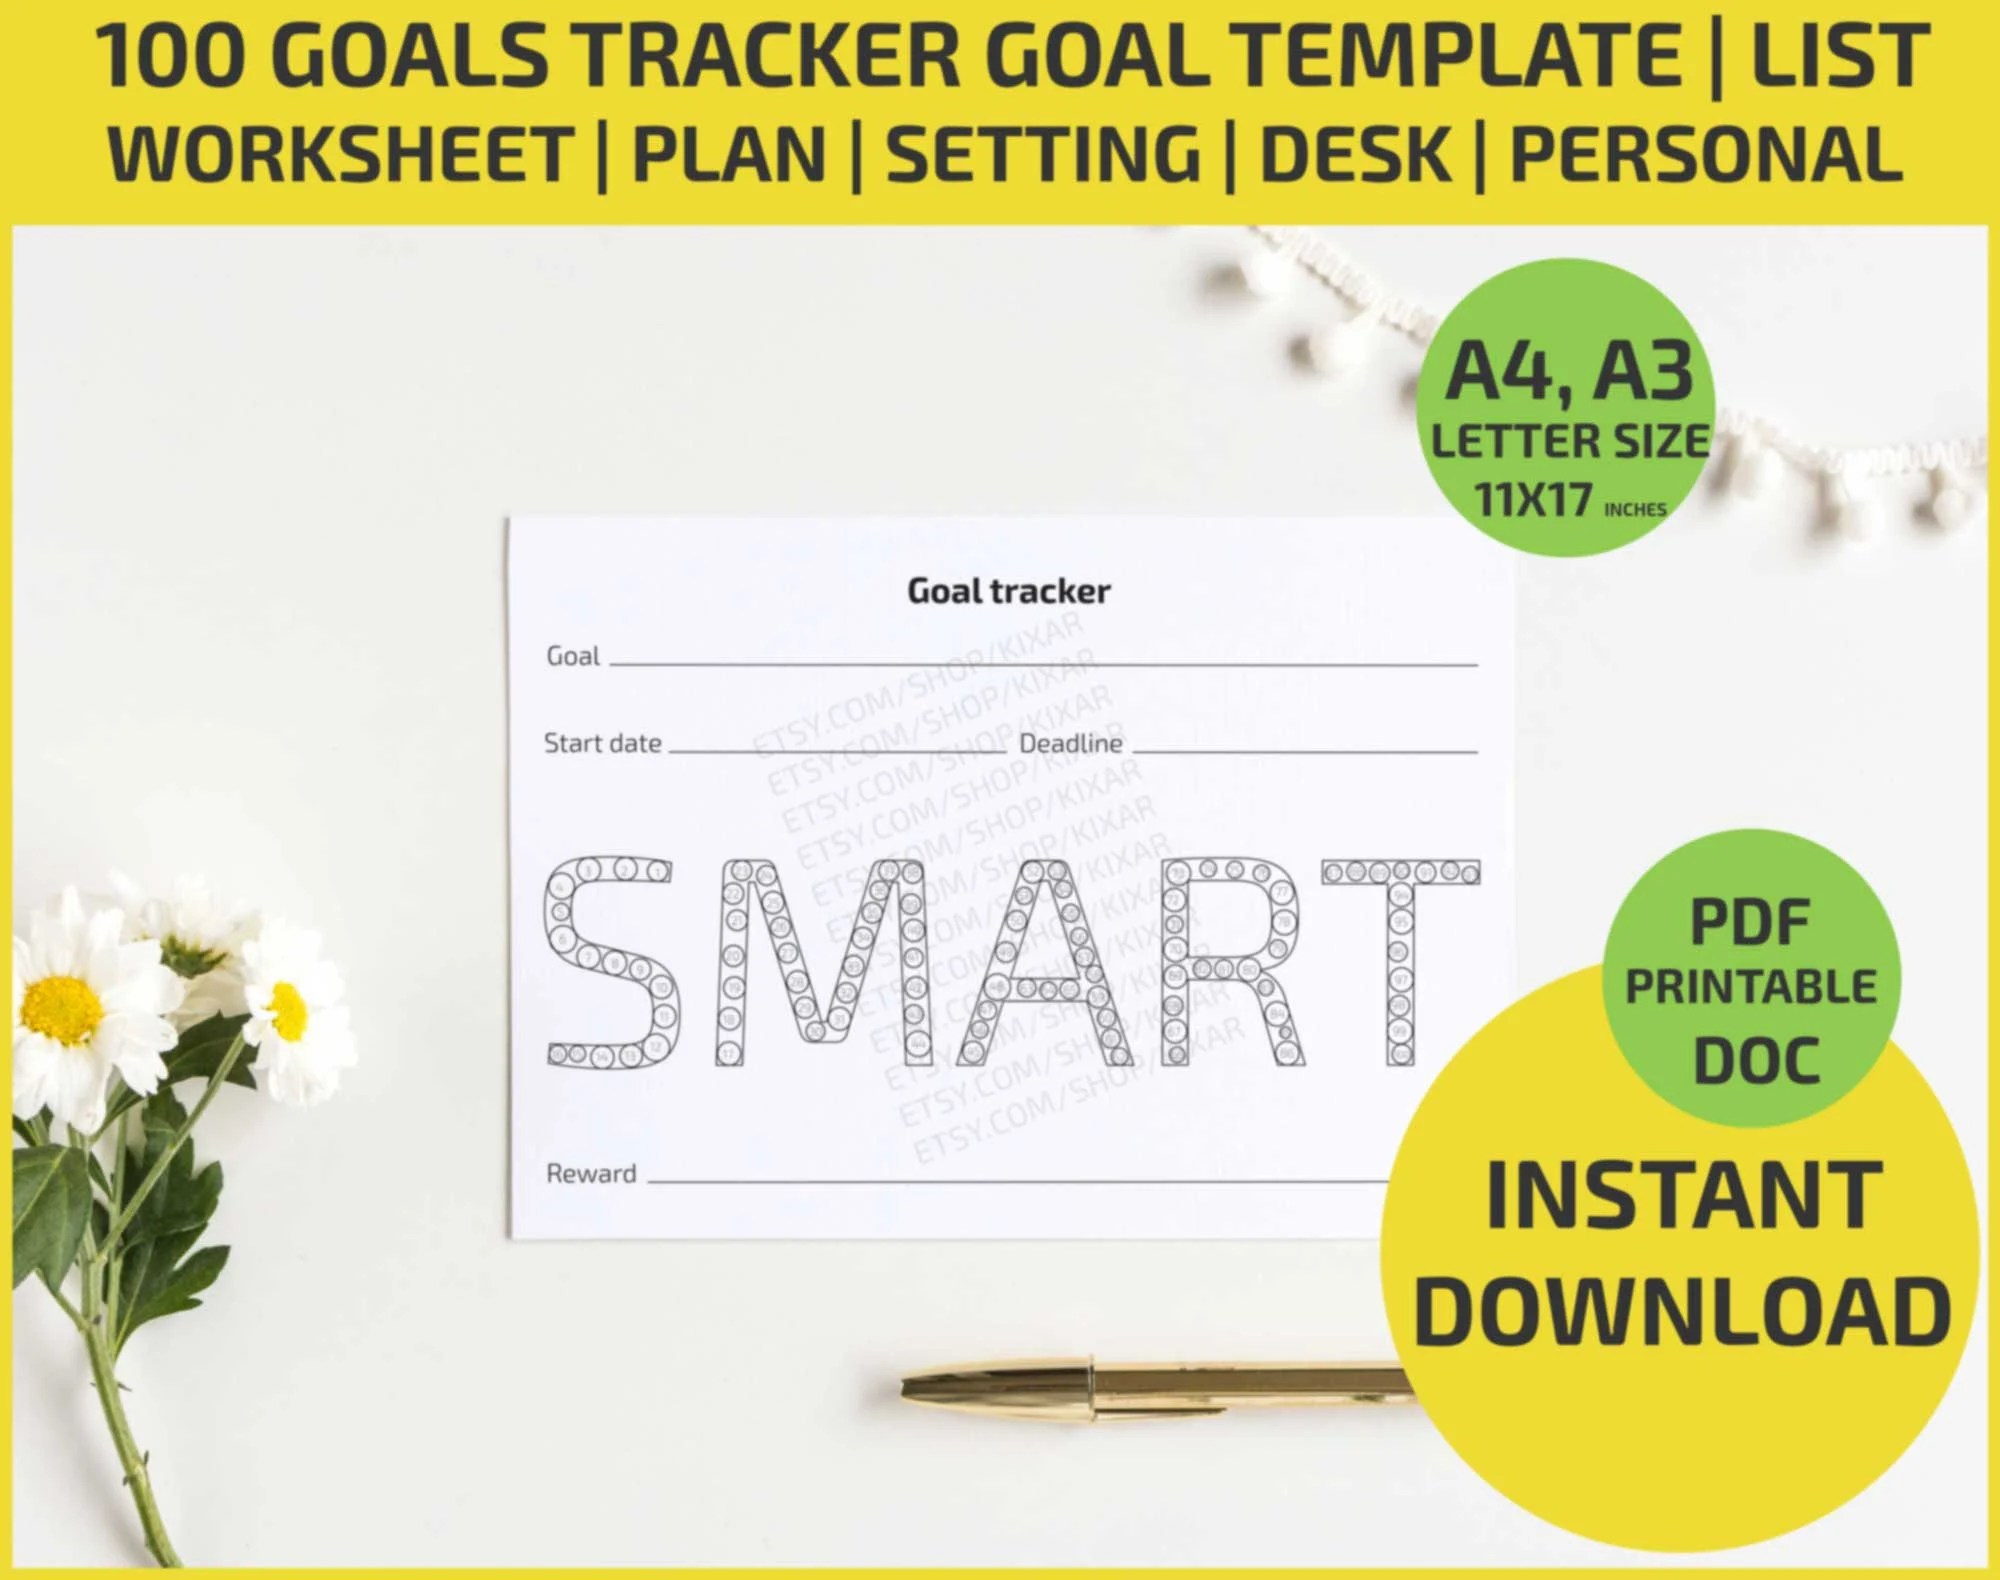 100 Goals Tracker Goal Template Coloring Printable